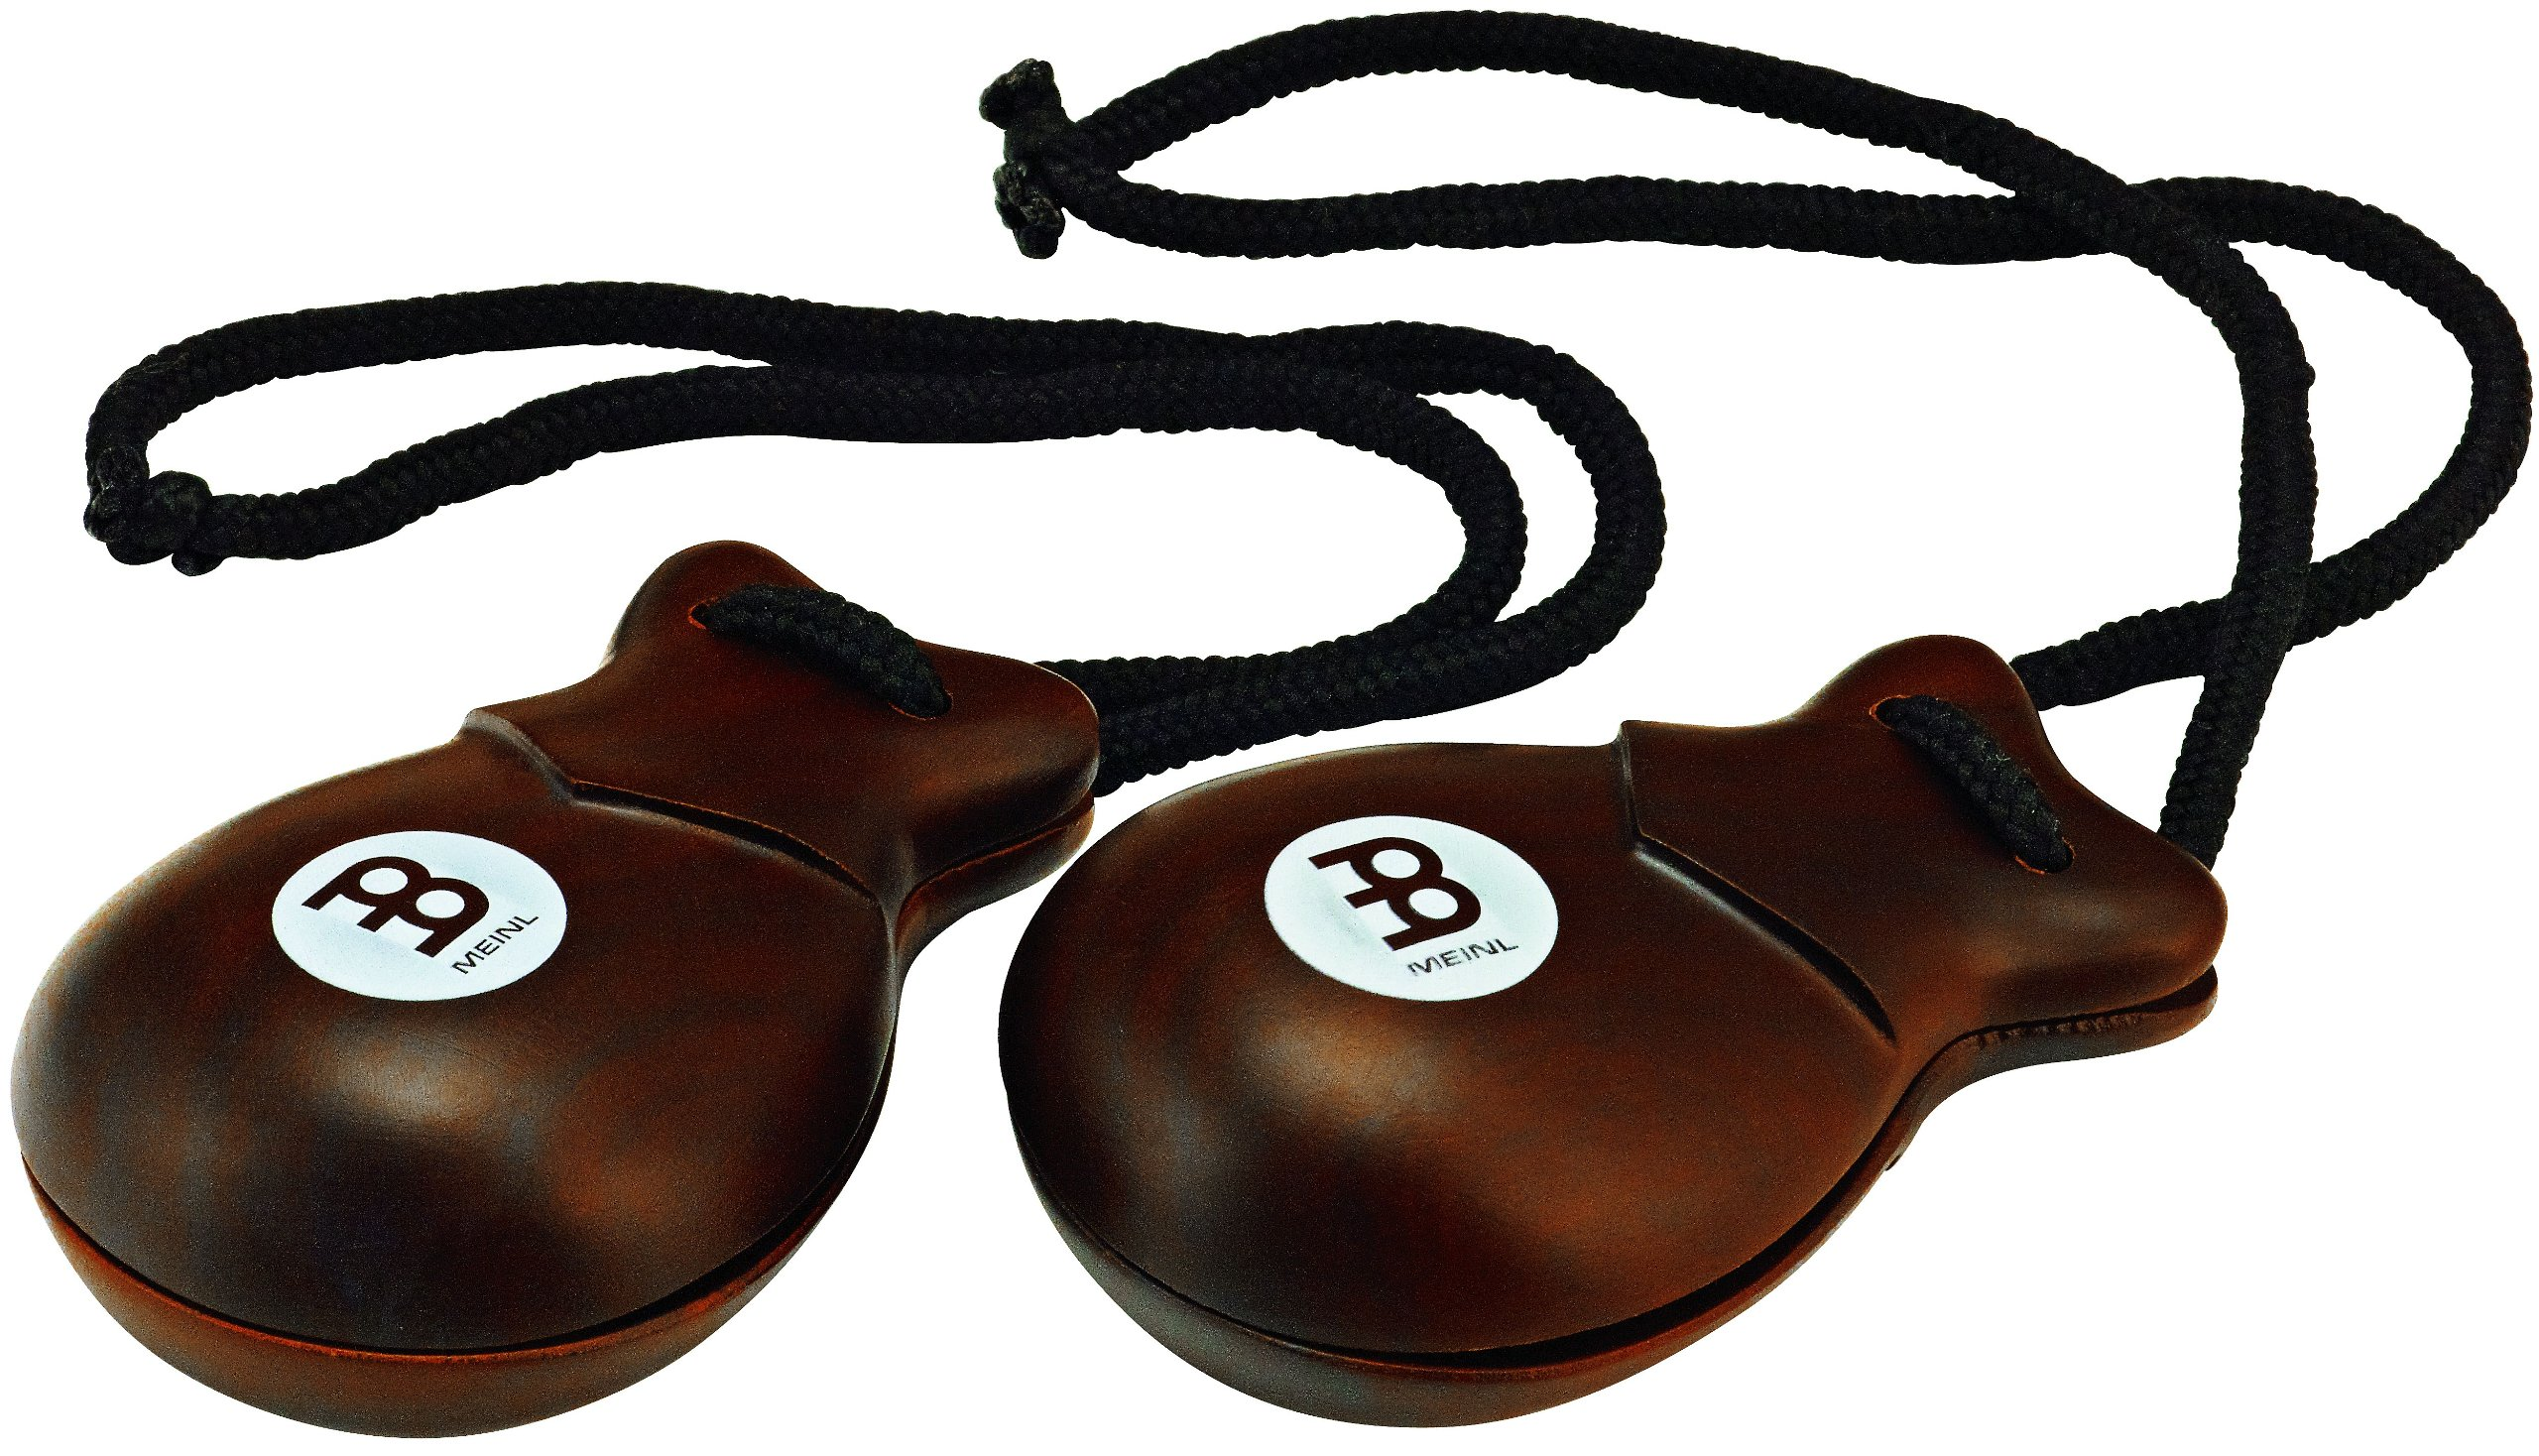 Meinl Percussion FC2 Rosewood Castanets by Meinl Percussion